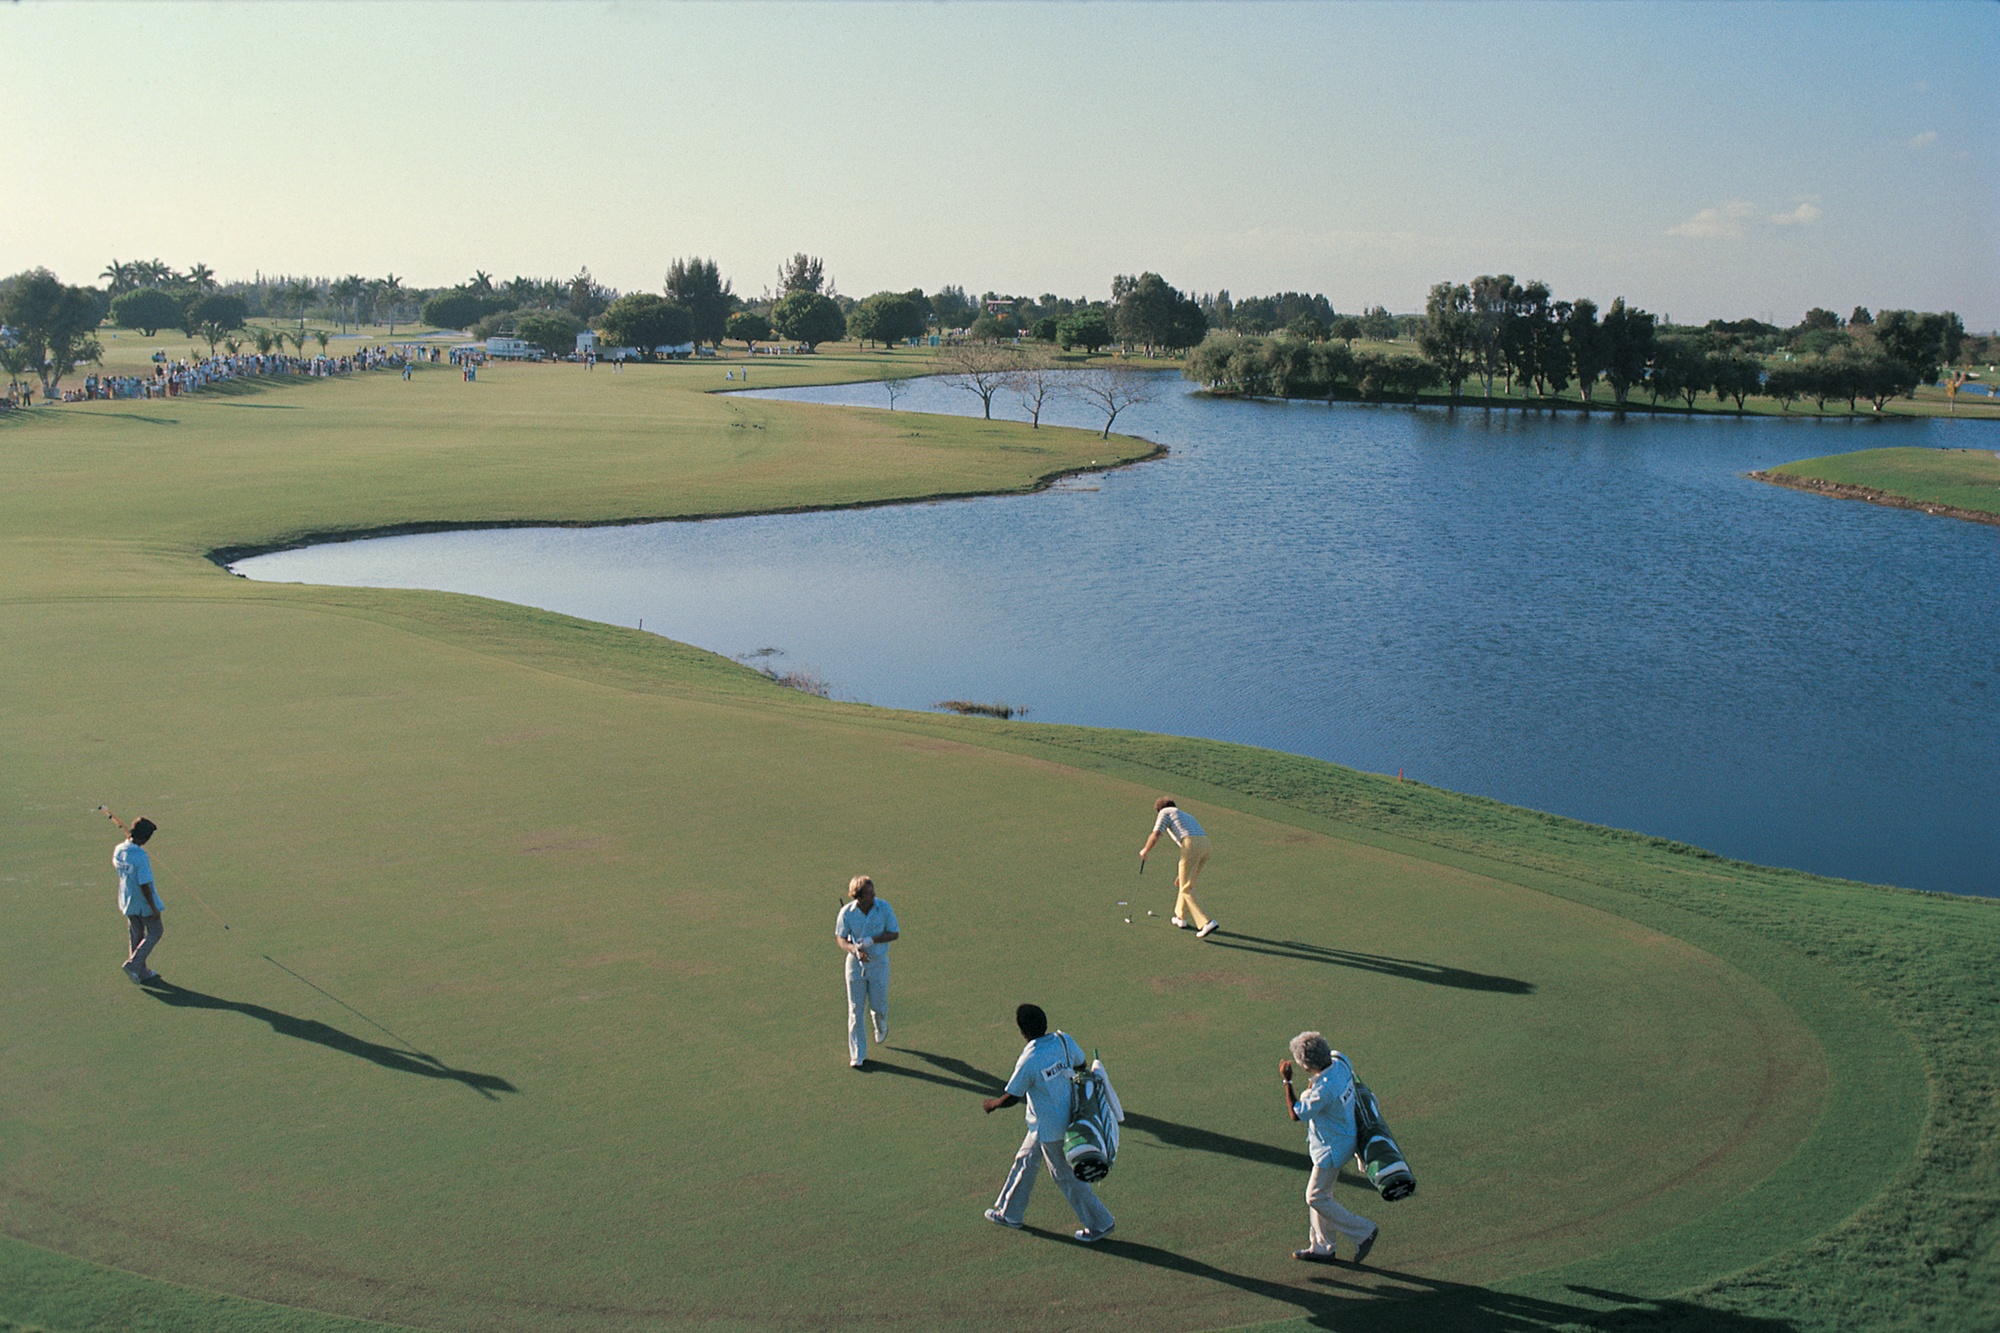 18th Hole, Doral Golf Resort, Miami, Florida, 1976